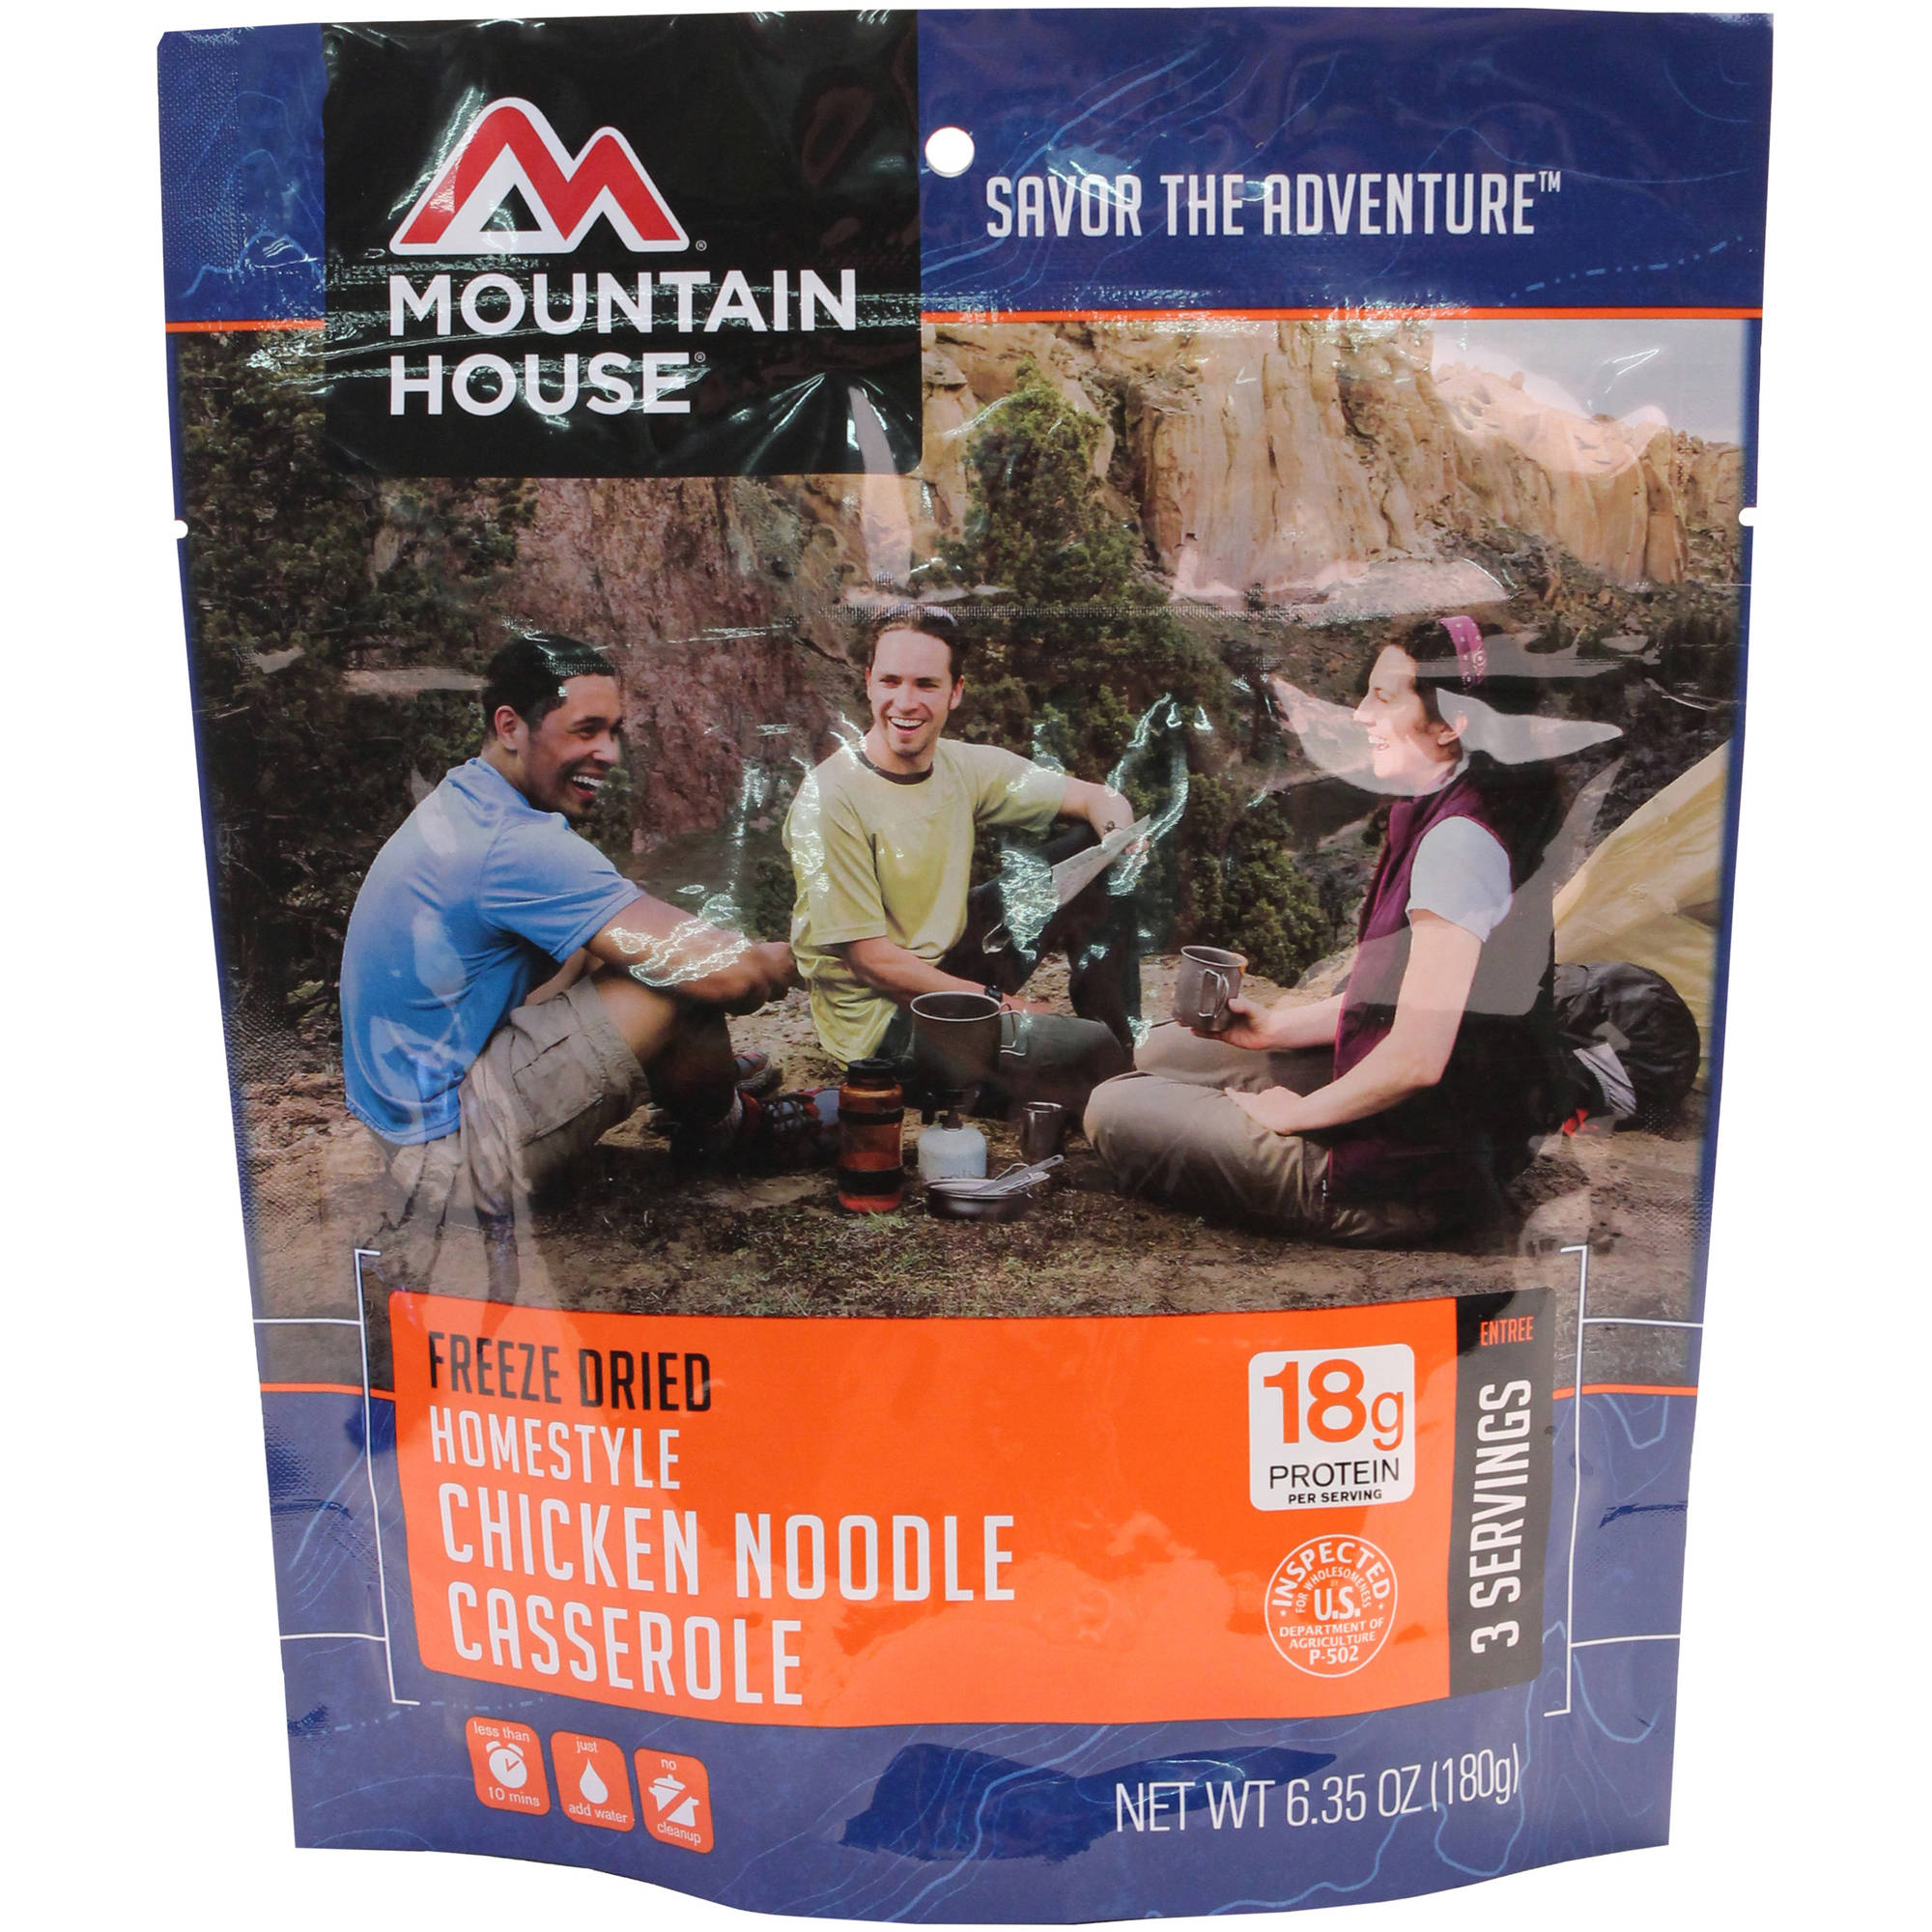 Mountain House Entrees Homestyle Chicken Noodle Casserole, 3 Servings by Mountain House